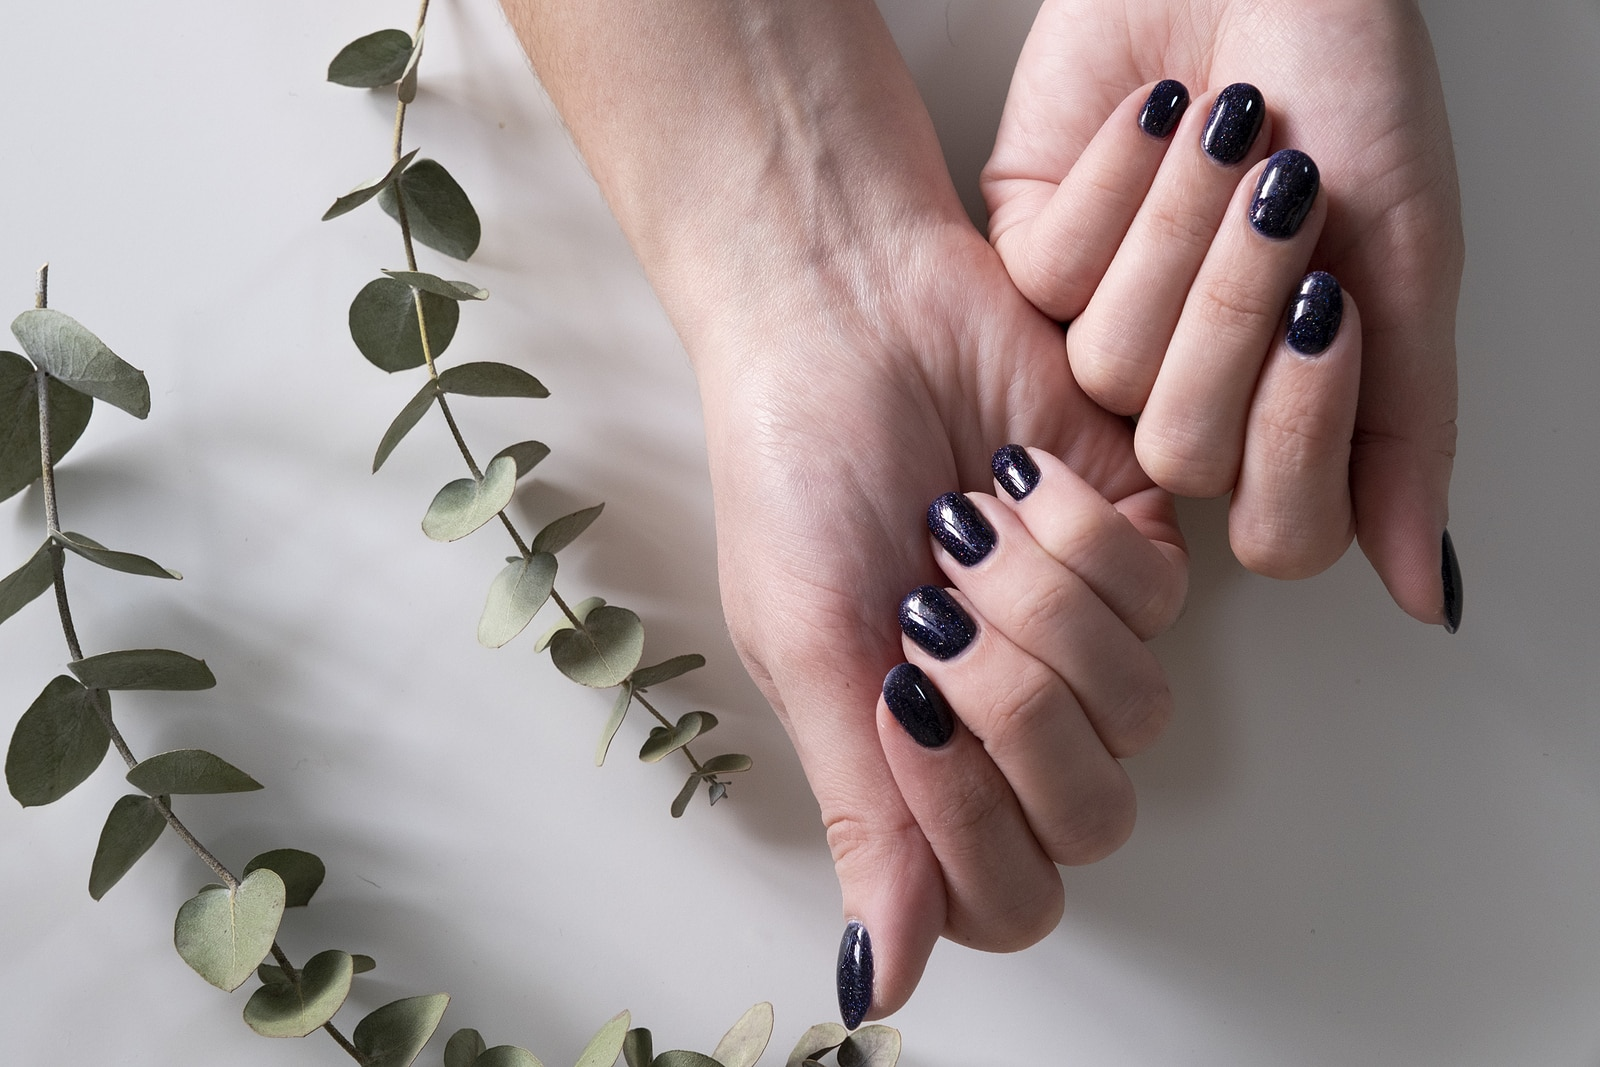 Hormones and nail growth: get the real truth